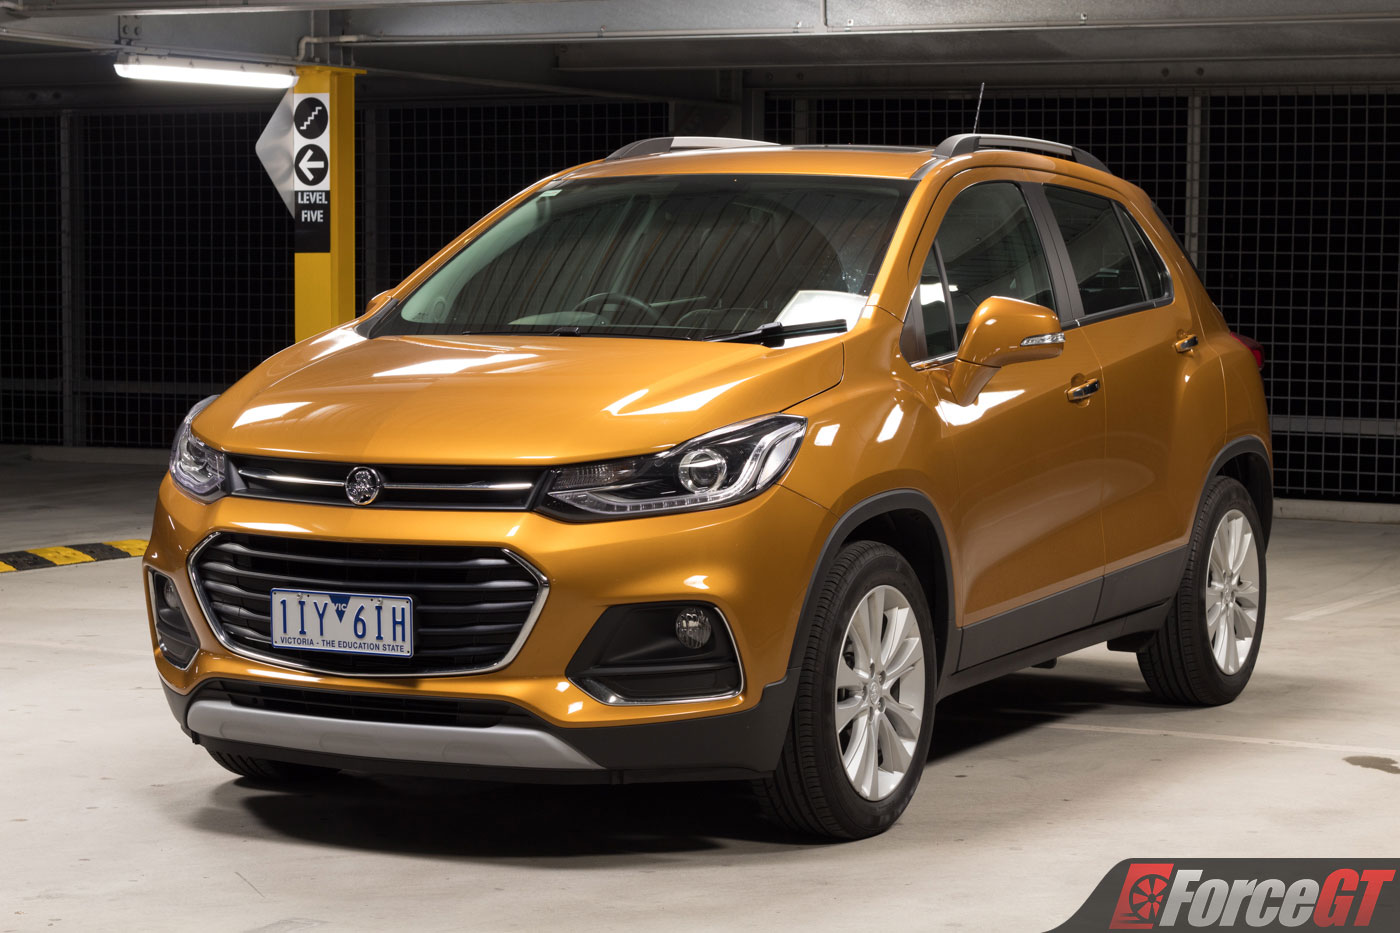 Jeep Renegade Towing Capacity >> 2017 Holden Trax LTZ Review - ForceGT.com